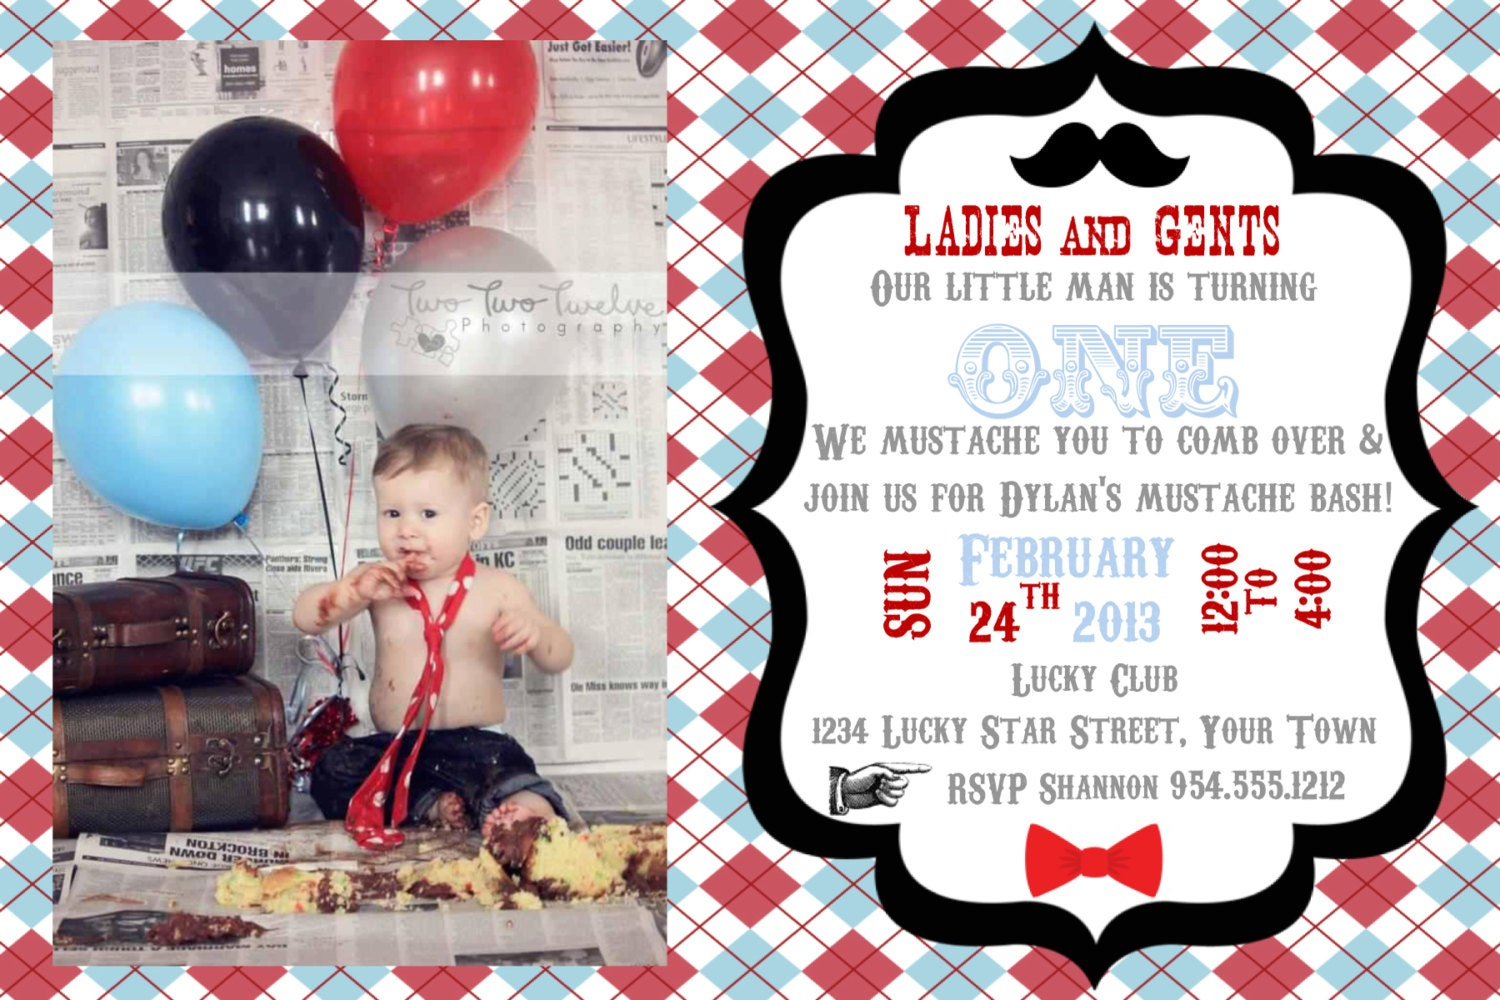 Little Man Mustache Bash Invitation Double Sided Template 4X6 | Etsy